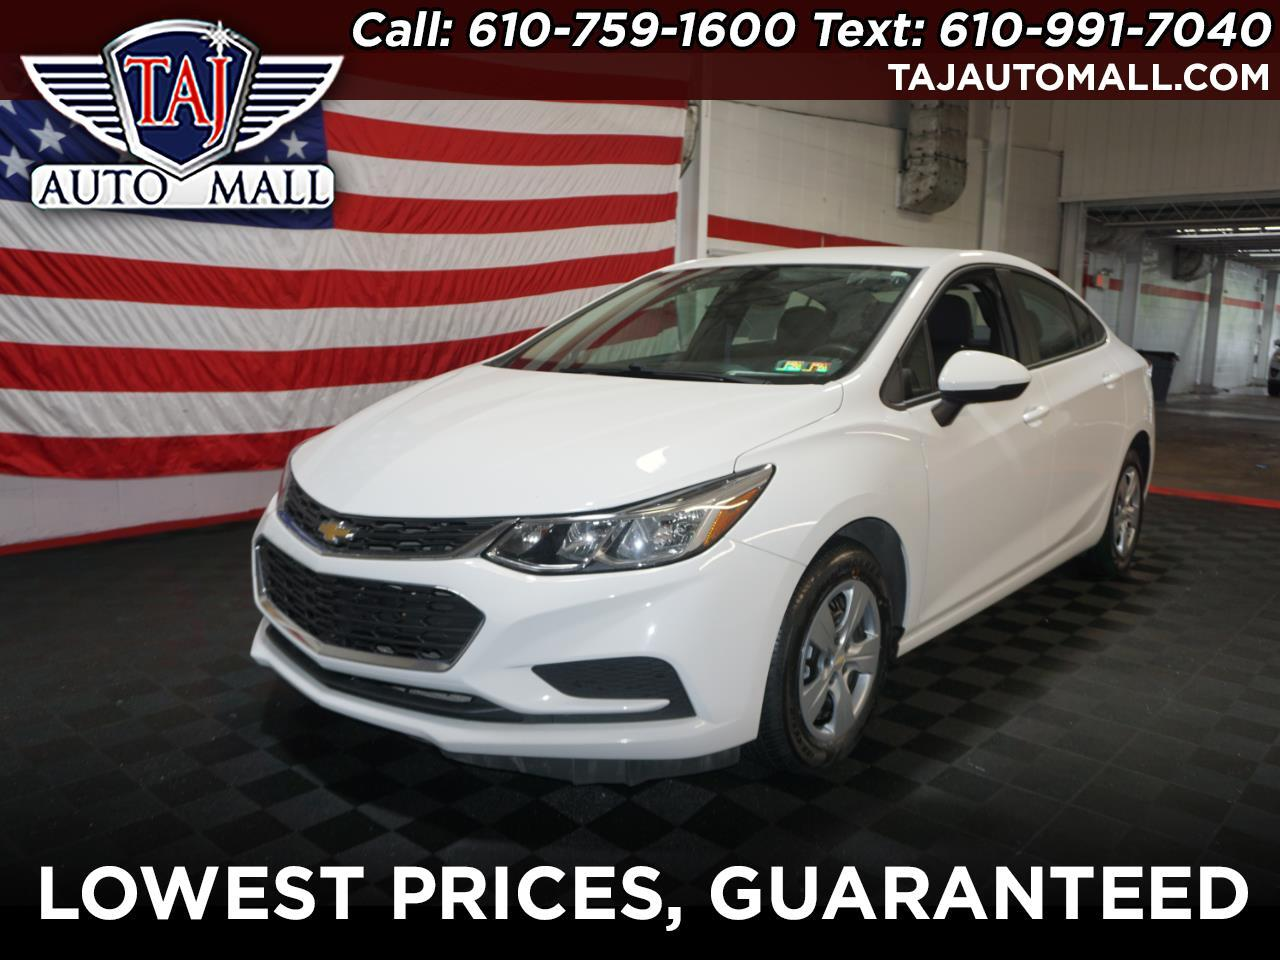 Used 2017 Chevrolet Cruze 4dr Sdn 1 4L LS w/1SB for Sale in